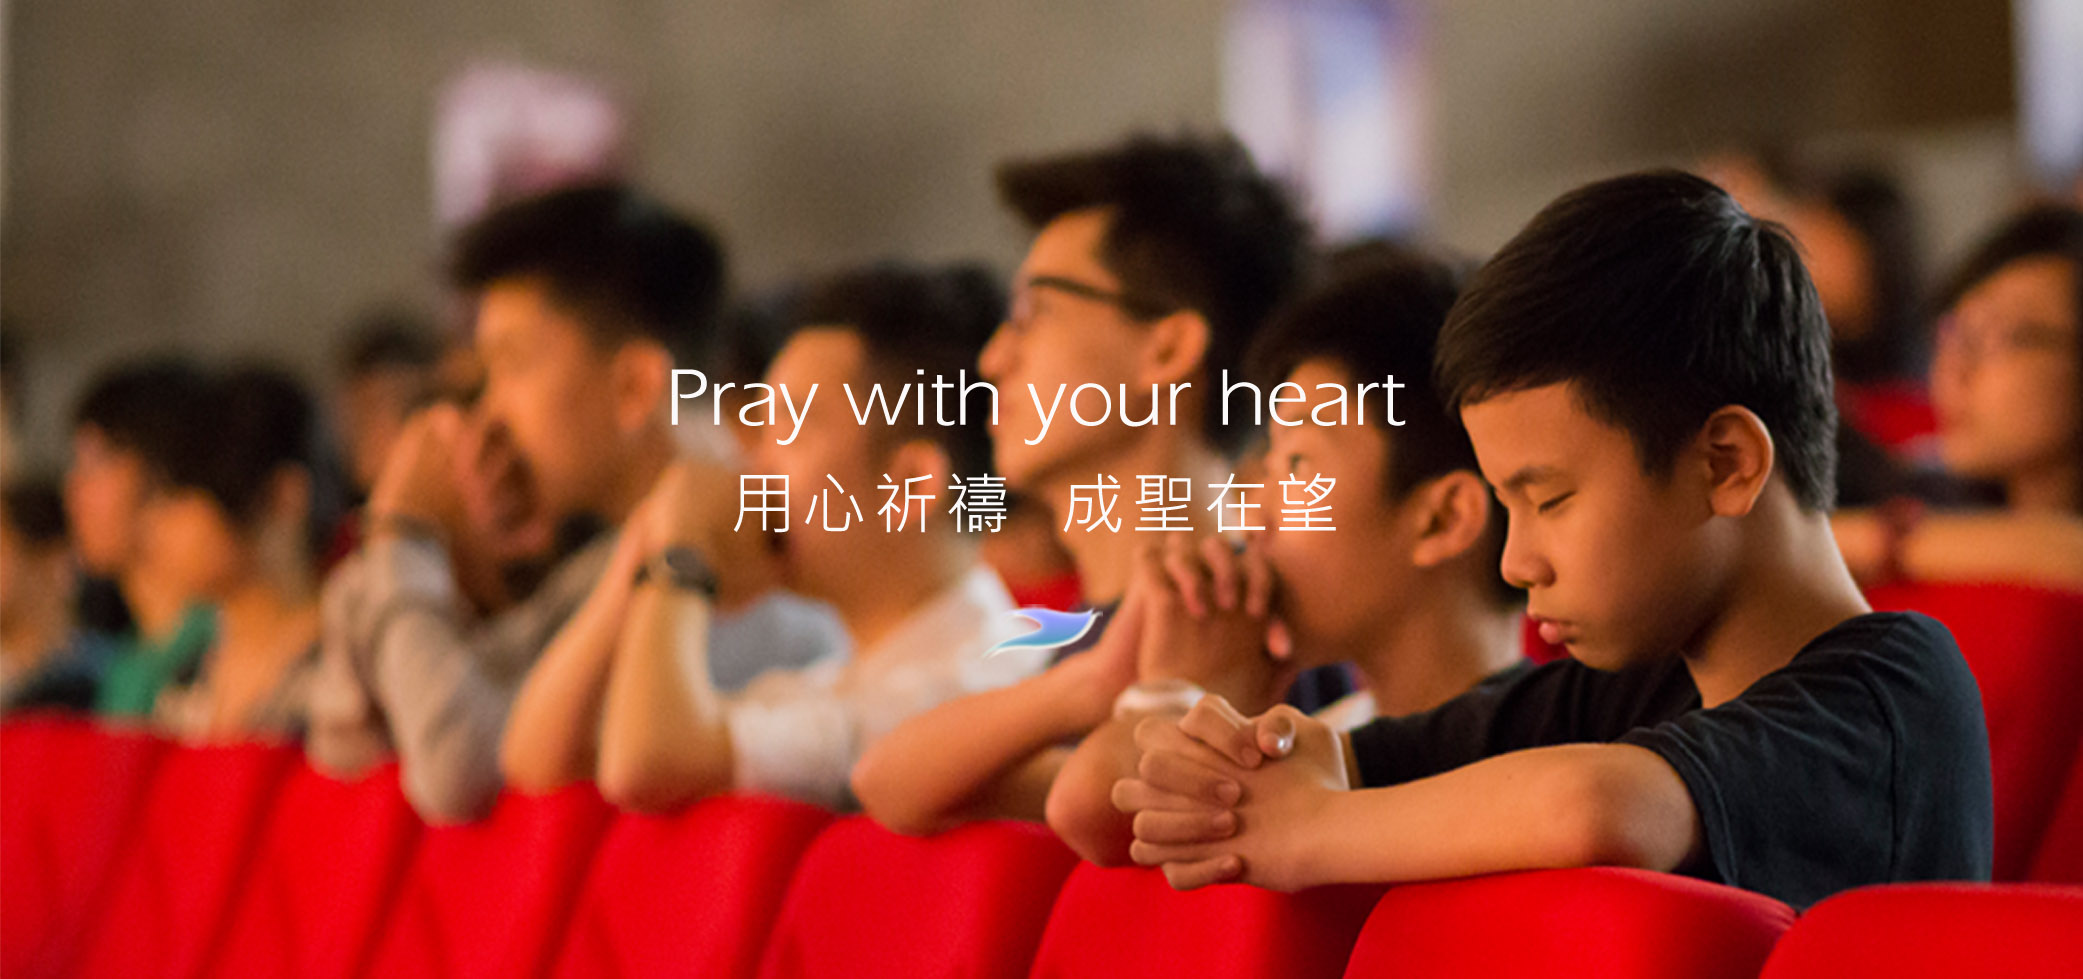 TOUCH Website v3 - Carousel v3_1 - Pray.jpg